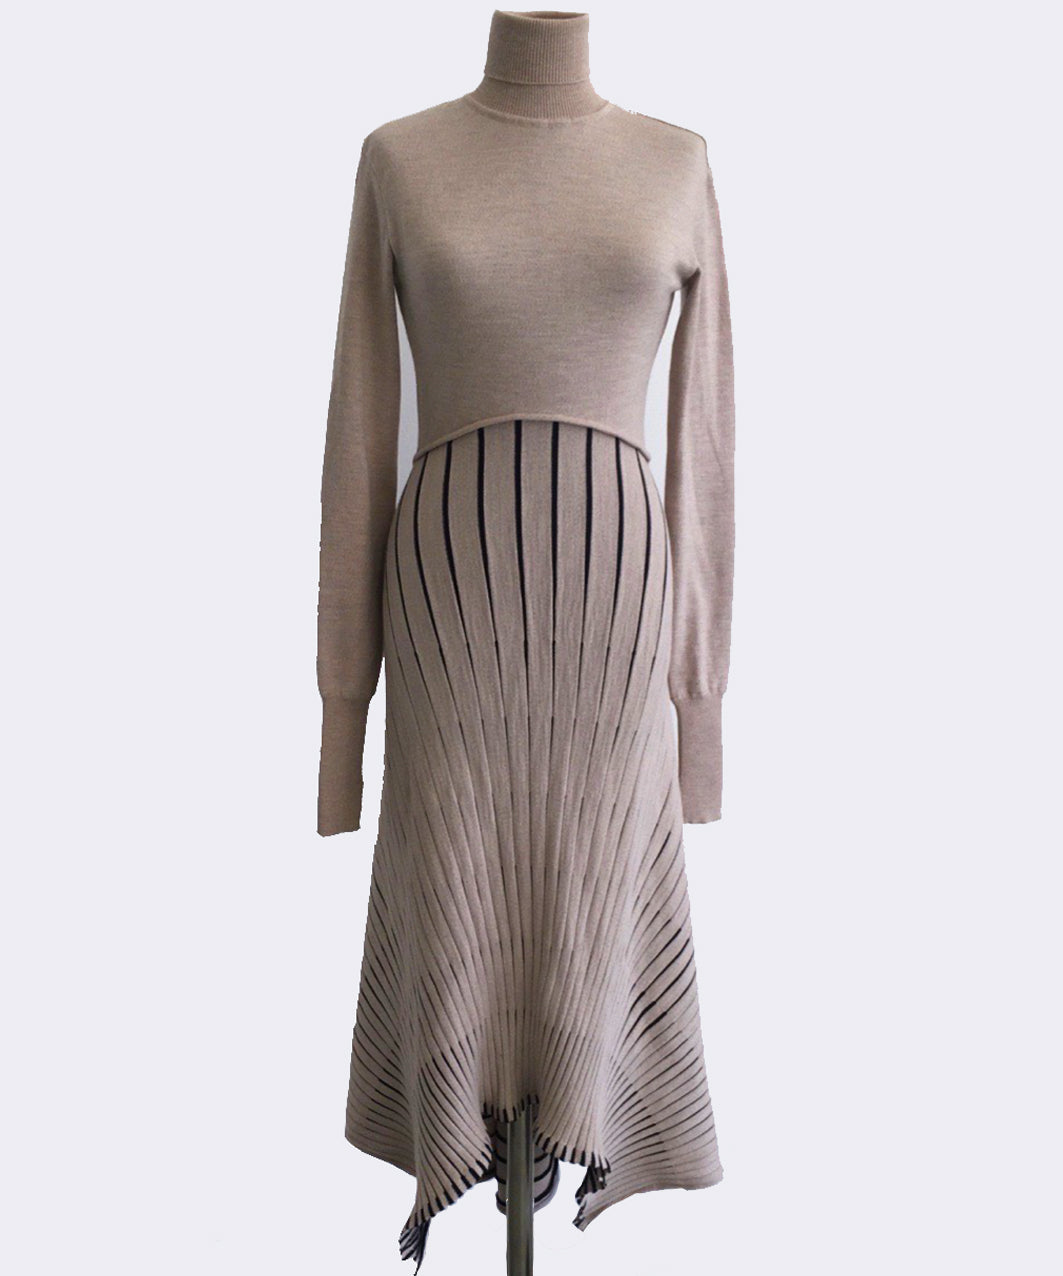 NUDE HIGH RIB-NECK DRESS pre-order